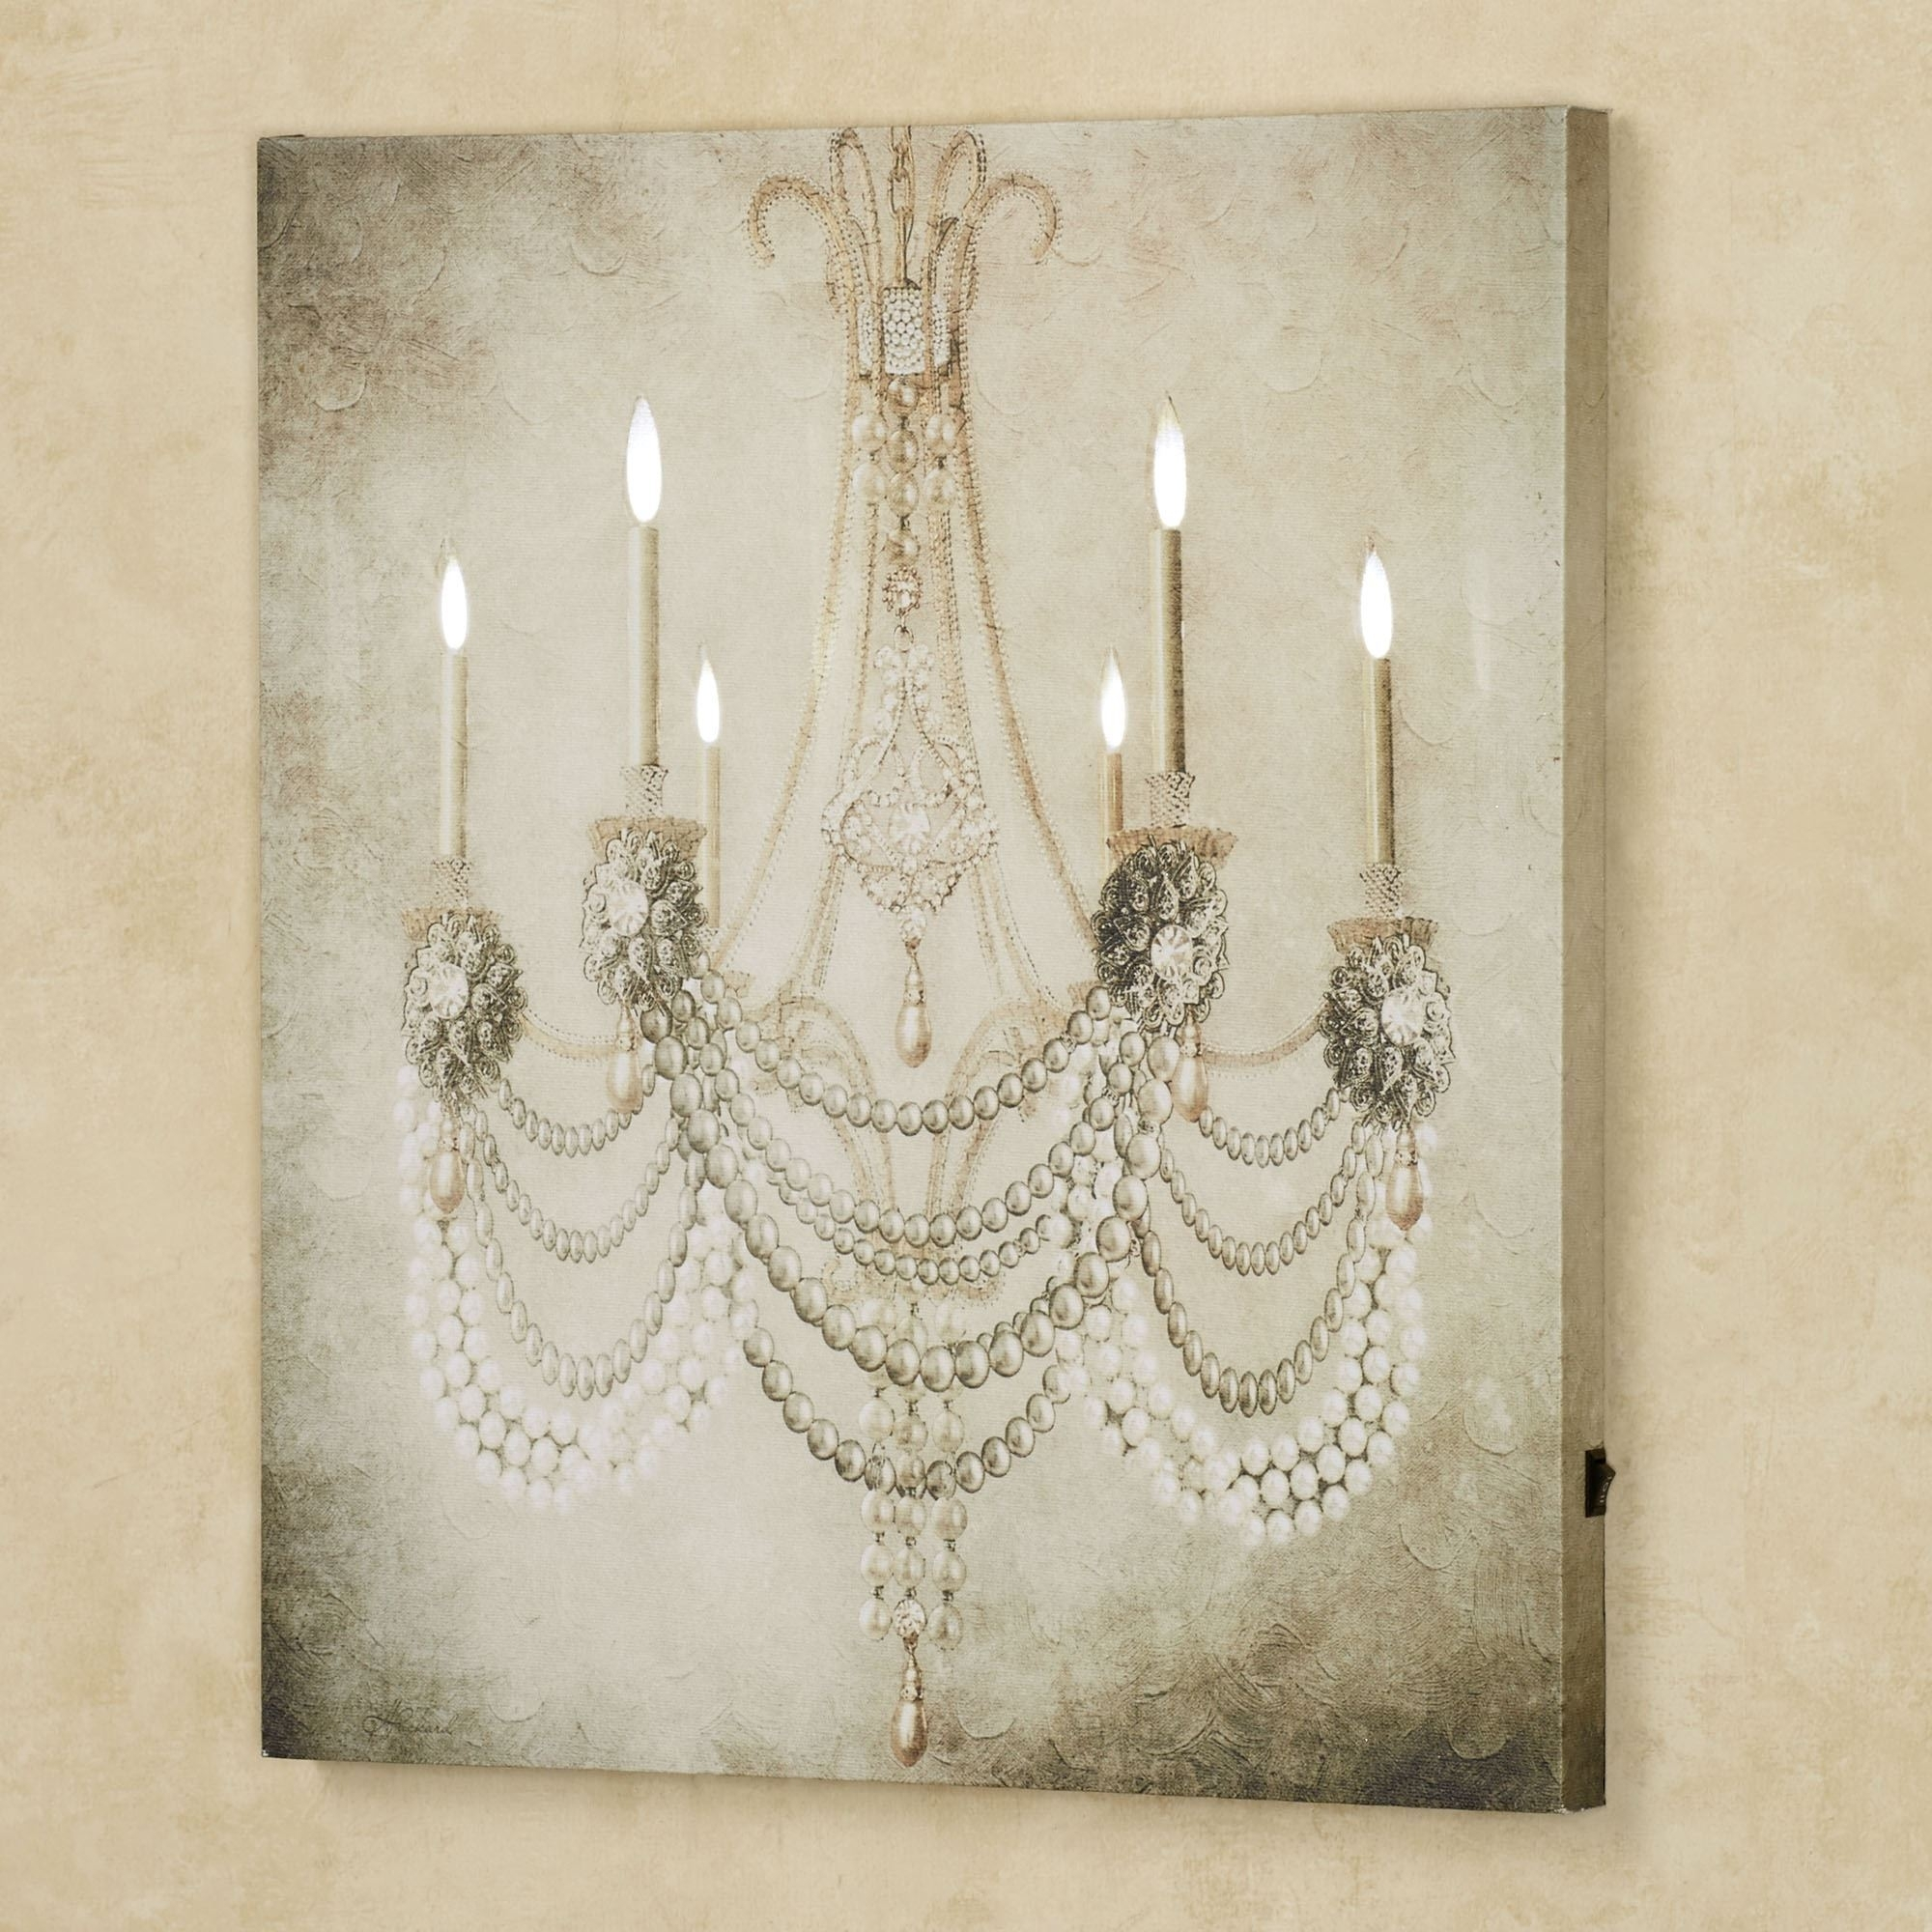 Vintage Chandelier Led Lighted Canvas Art Regarding Most Up To Date Chandelier Wall Art (View 2 of 20)